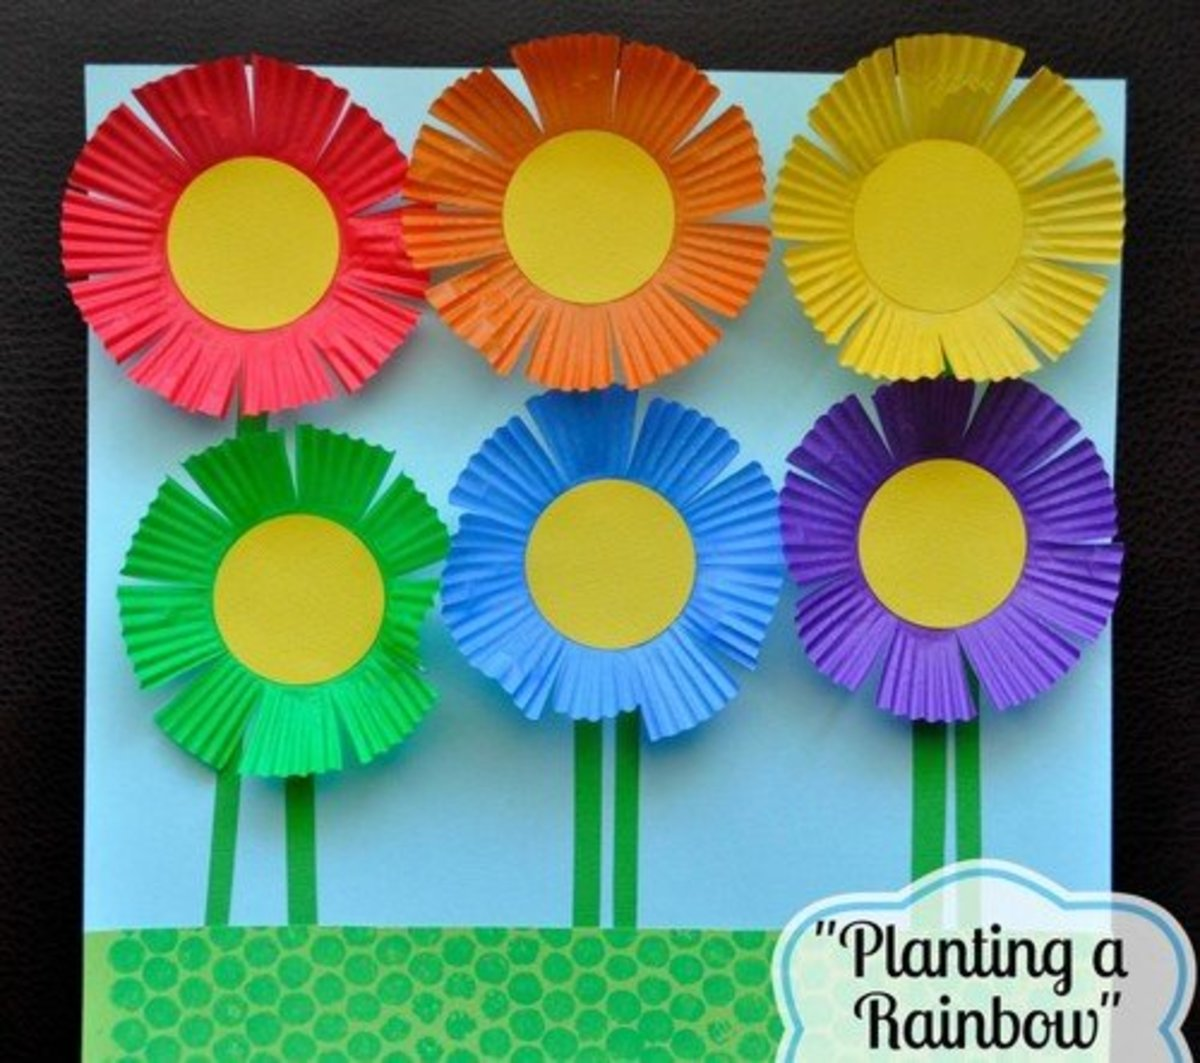 44 Fun And Easy Craft Ideas For Little Kids Feltmagnet